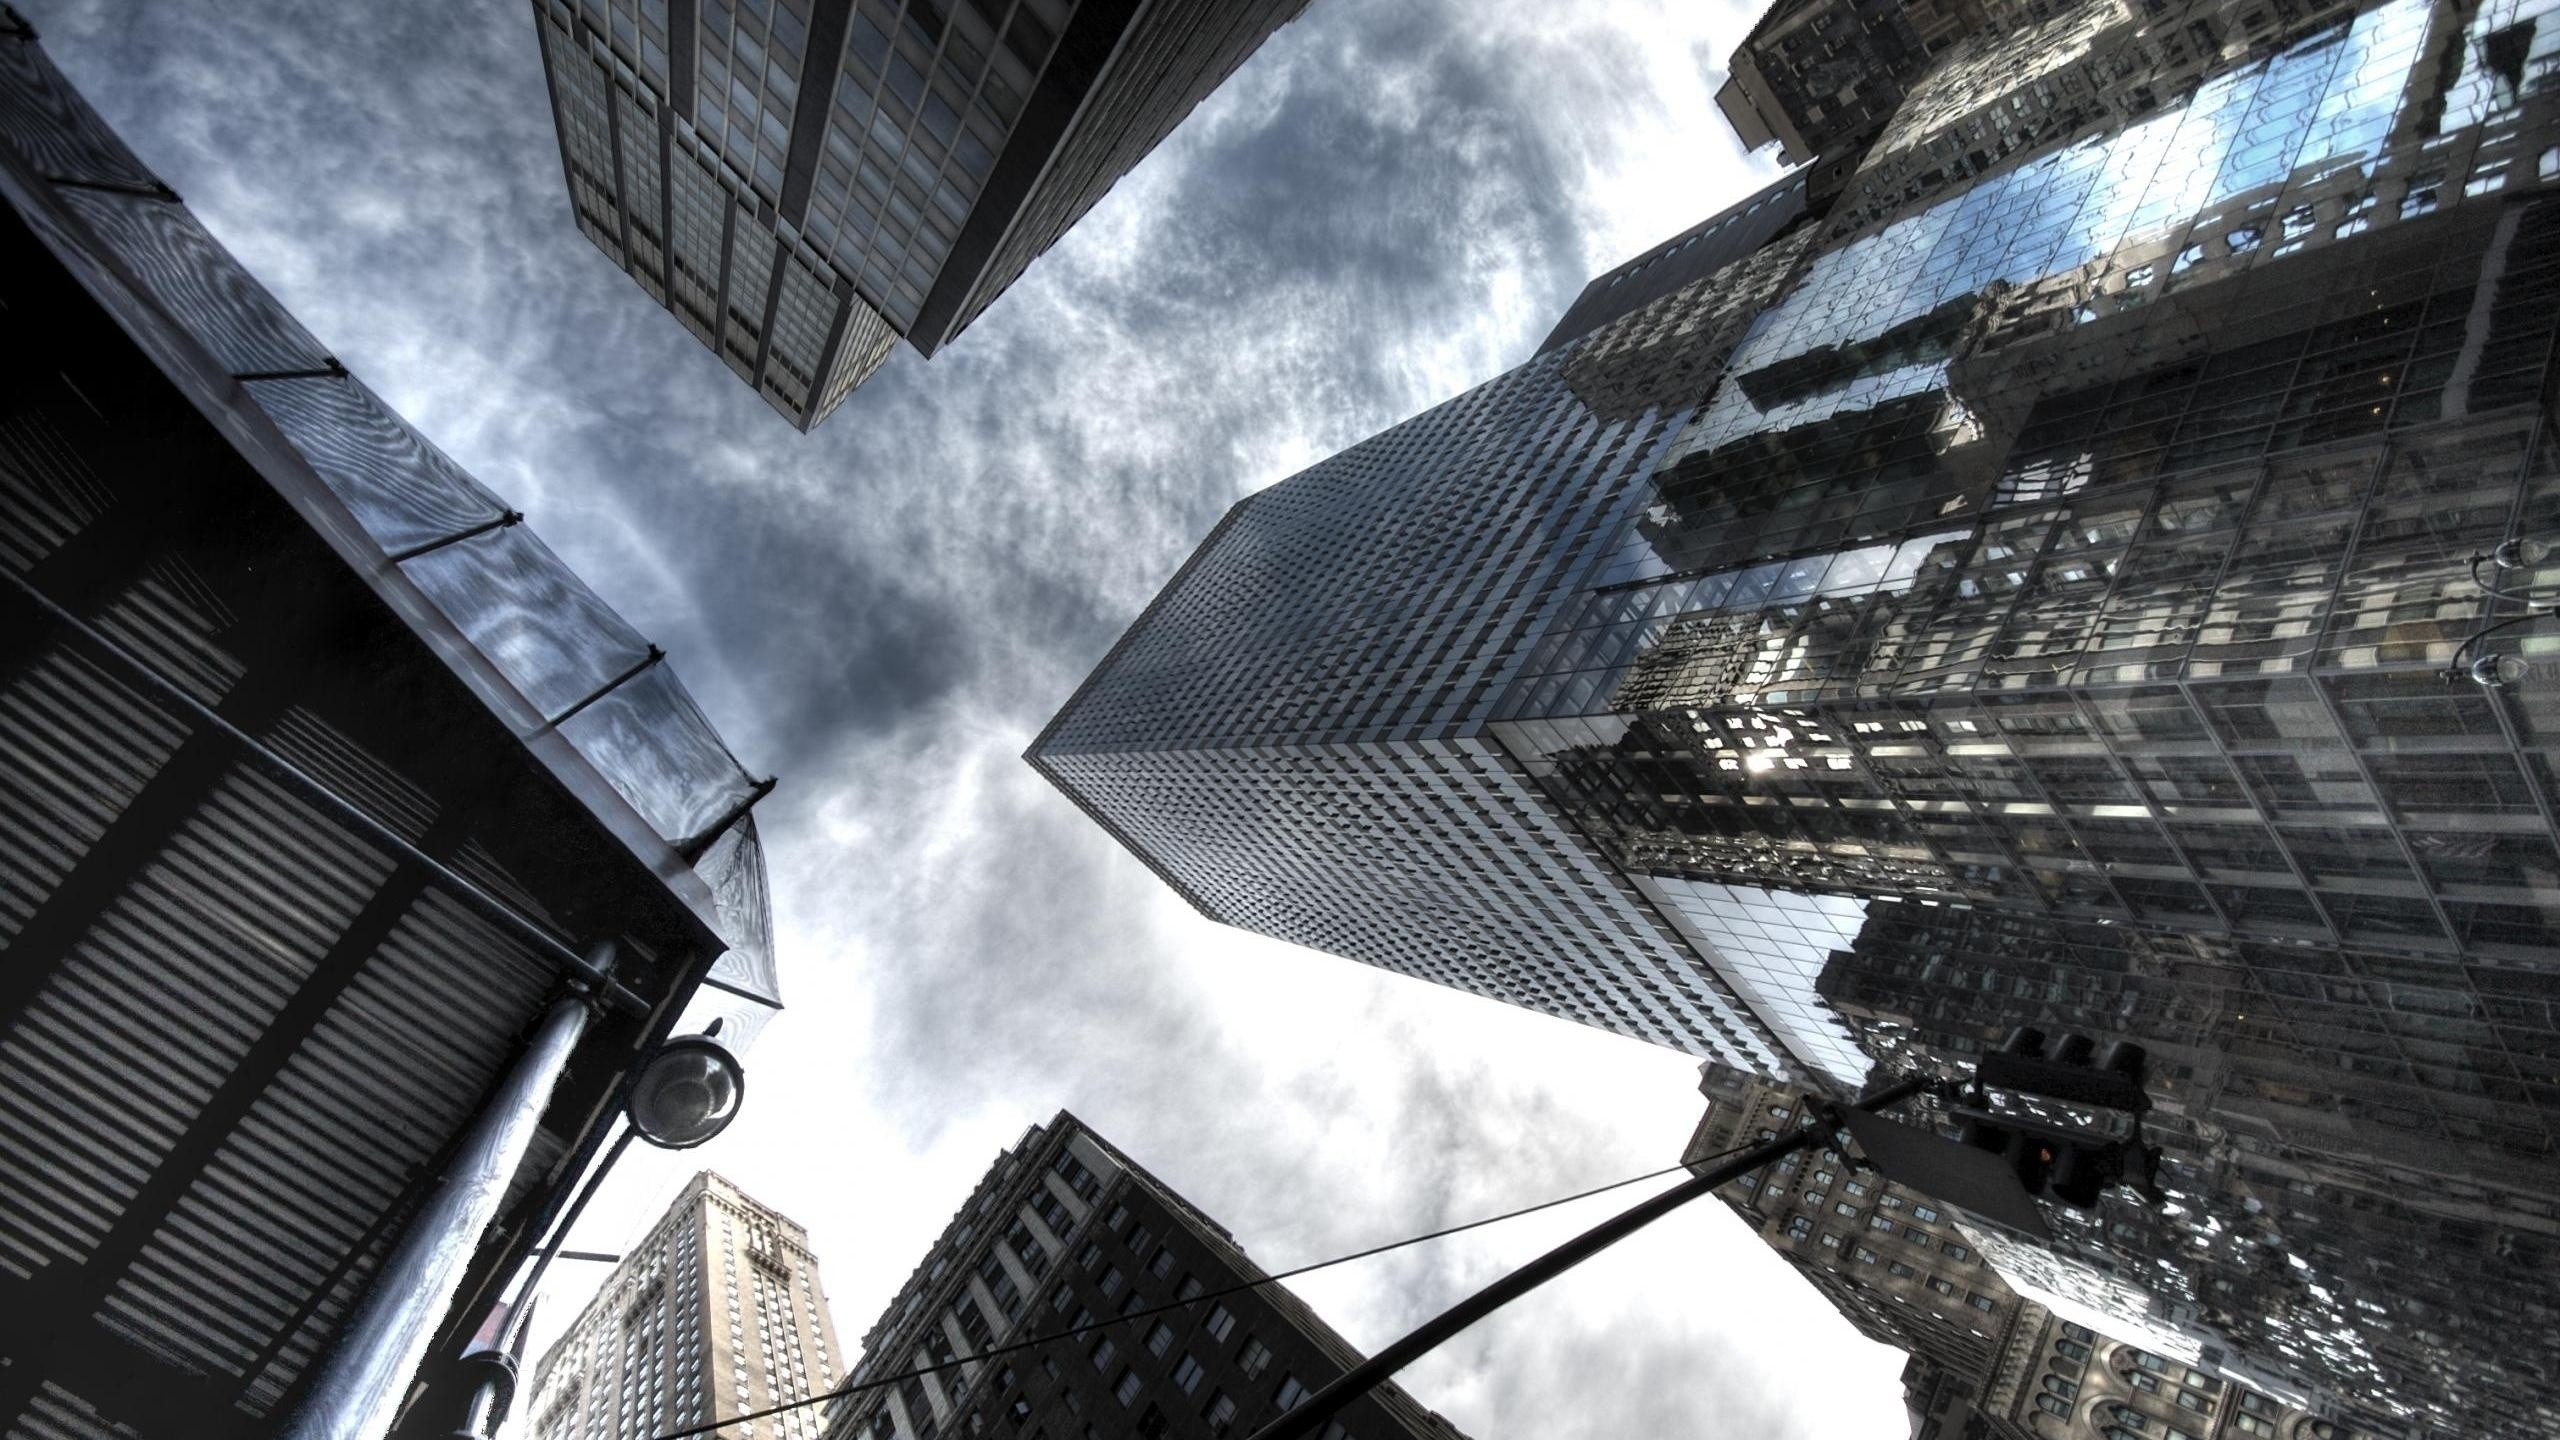 Clouds Cityscapes Architecture Buildings Skyscrapers Wallpaper